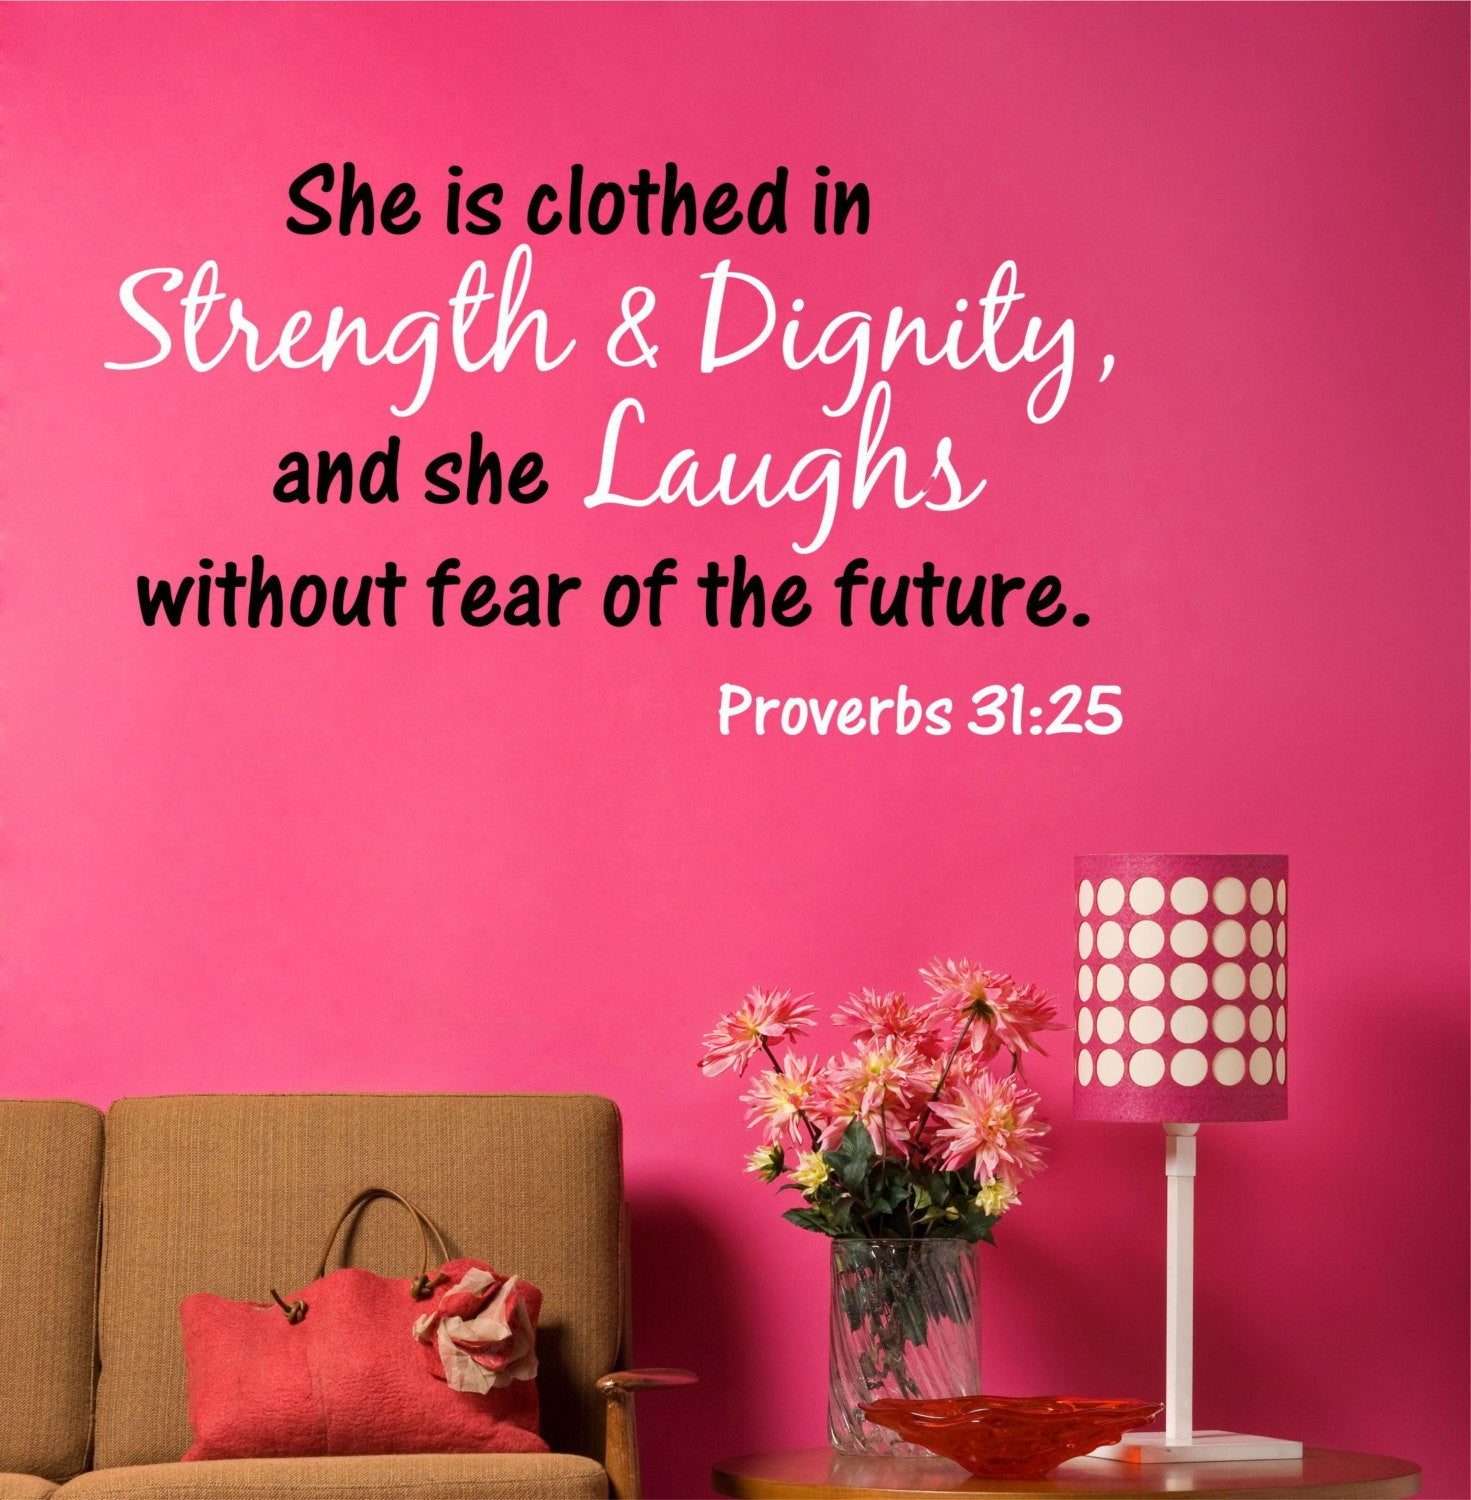 Bible Verse Wall Decal   Decor Designs Decals   1